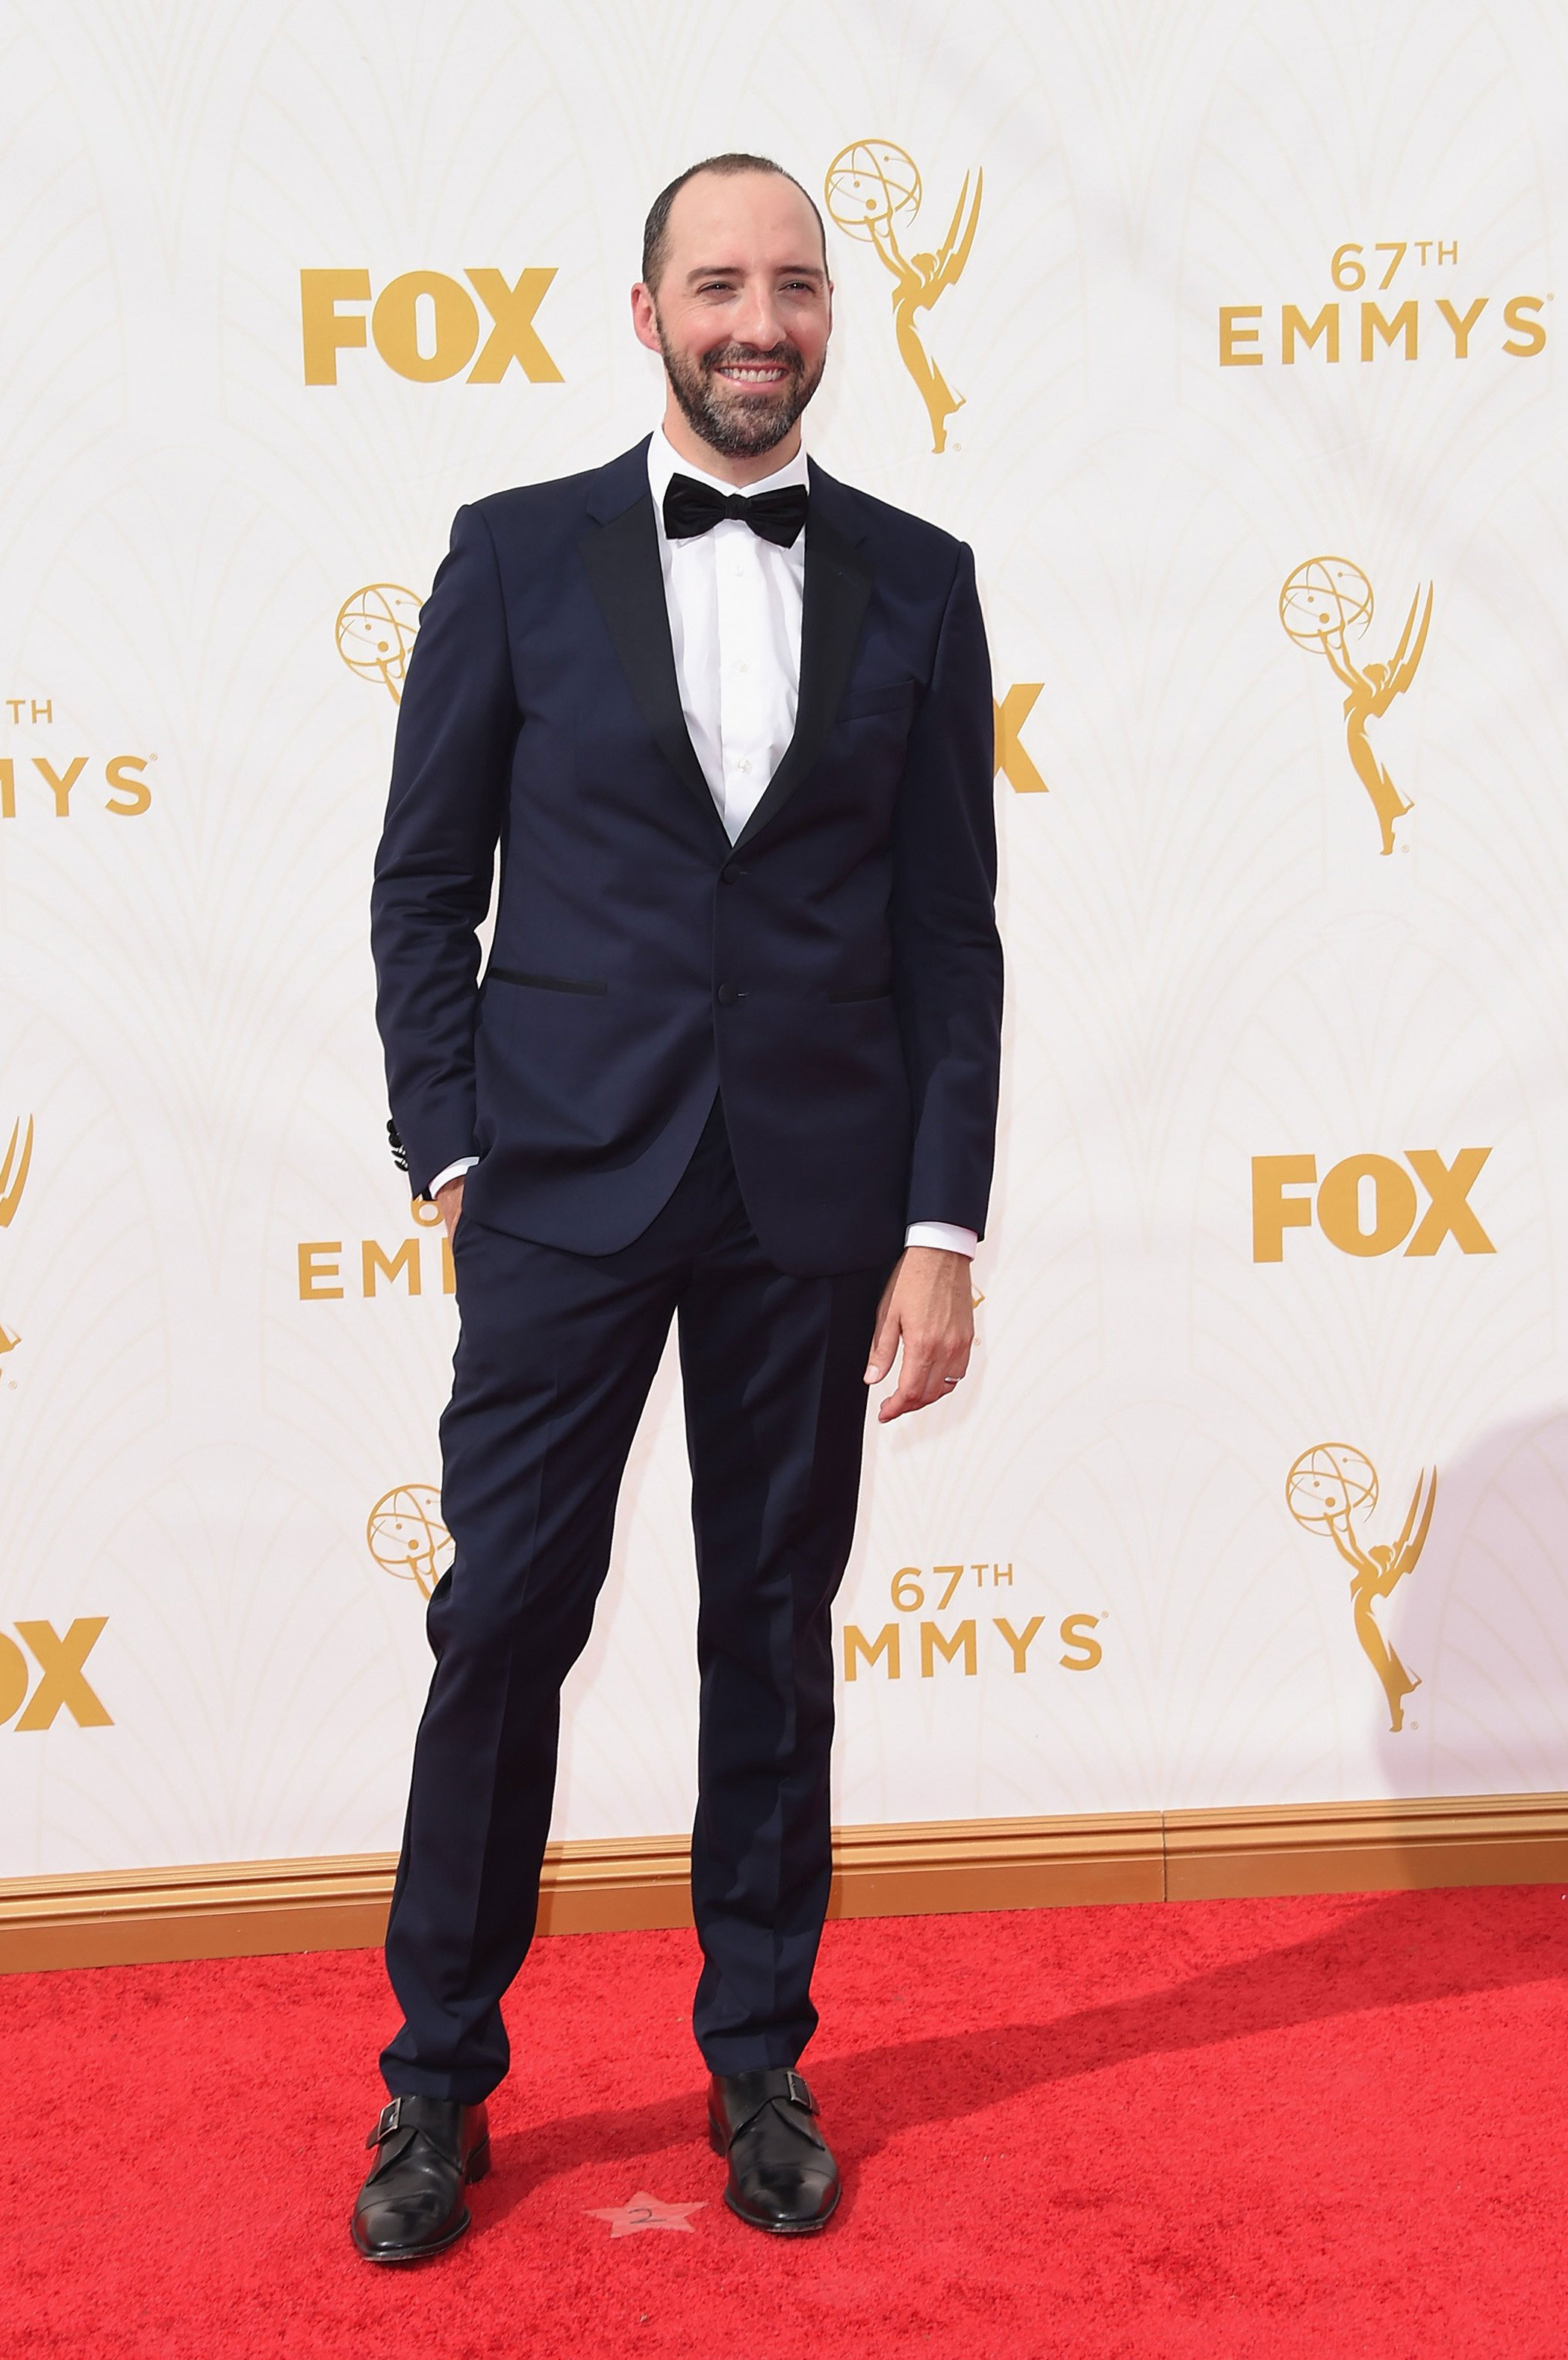 Tony Hale at the 67th Emmy Award on Sept. 20, 2015 in Los Angeles.